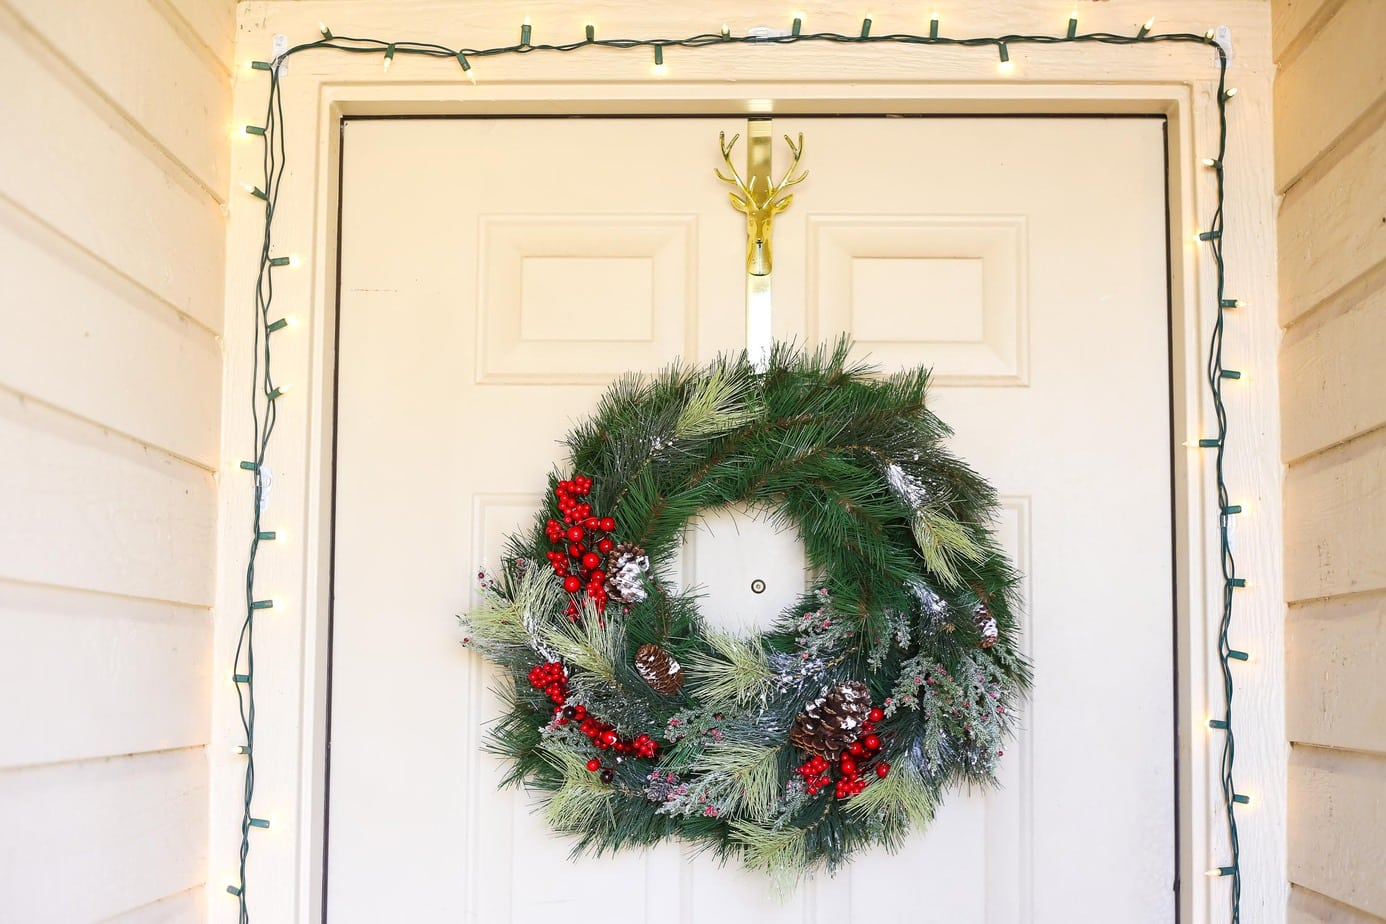 Easy and beautiful DIY Christmas wreath for your front door